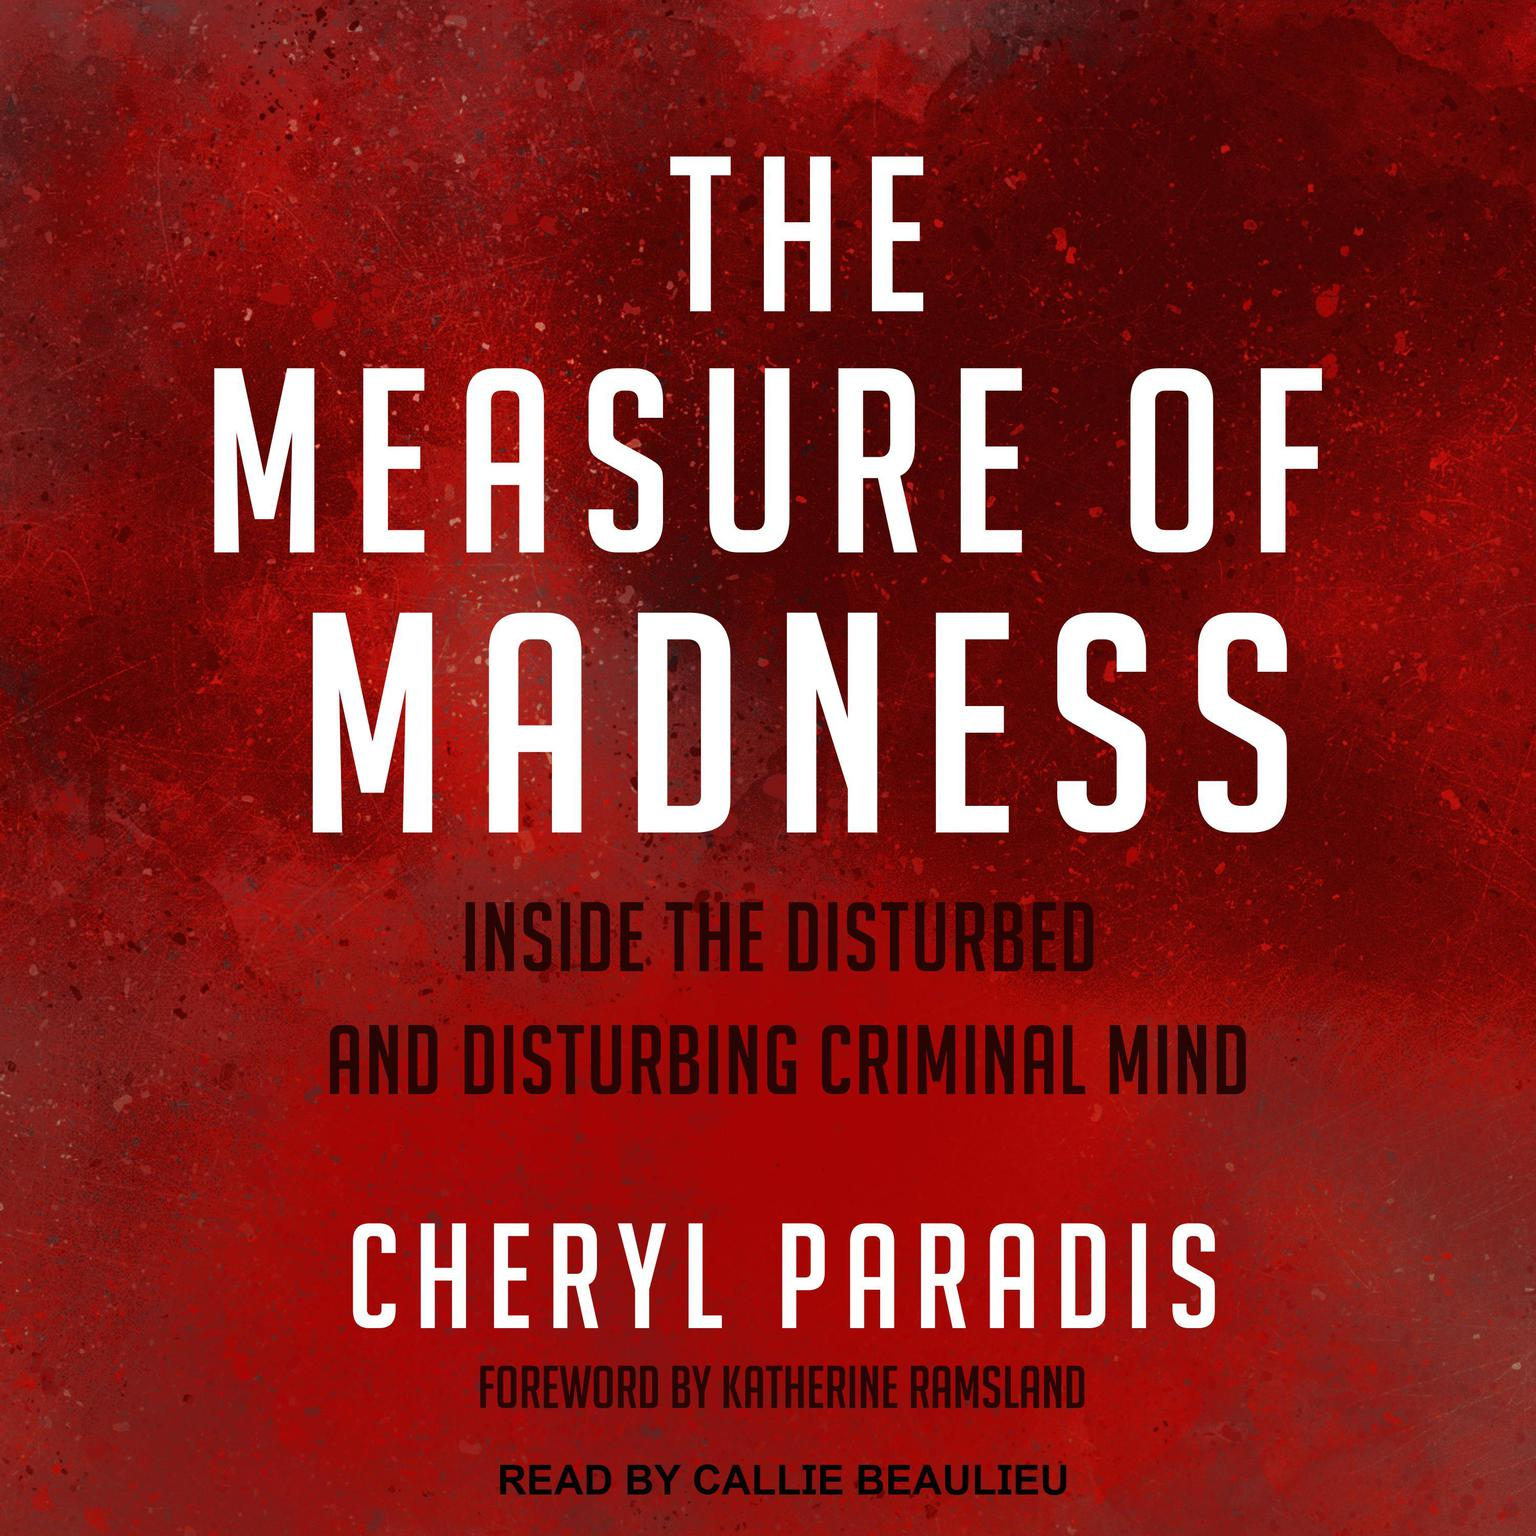 Printable The Measure of Madness: Inside the Disturbed and Disturbing Criminal Mind Audiobook Cover Art